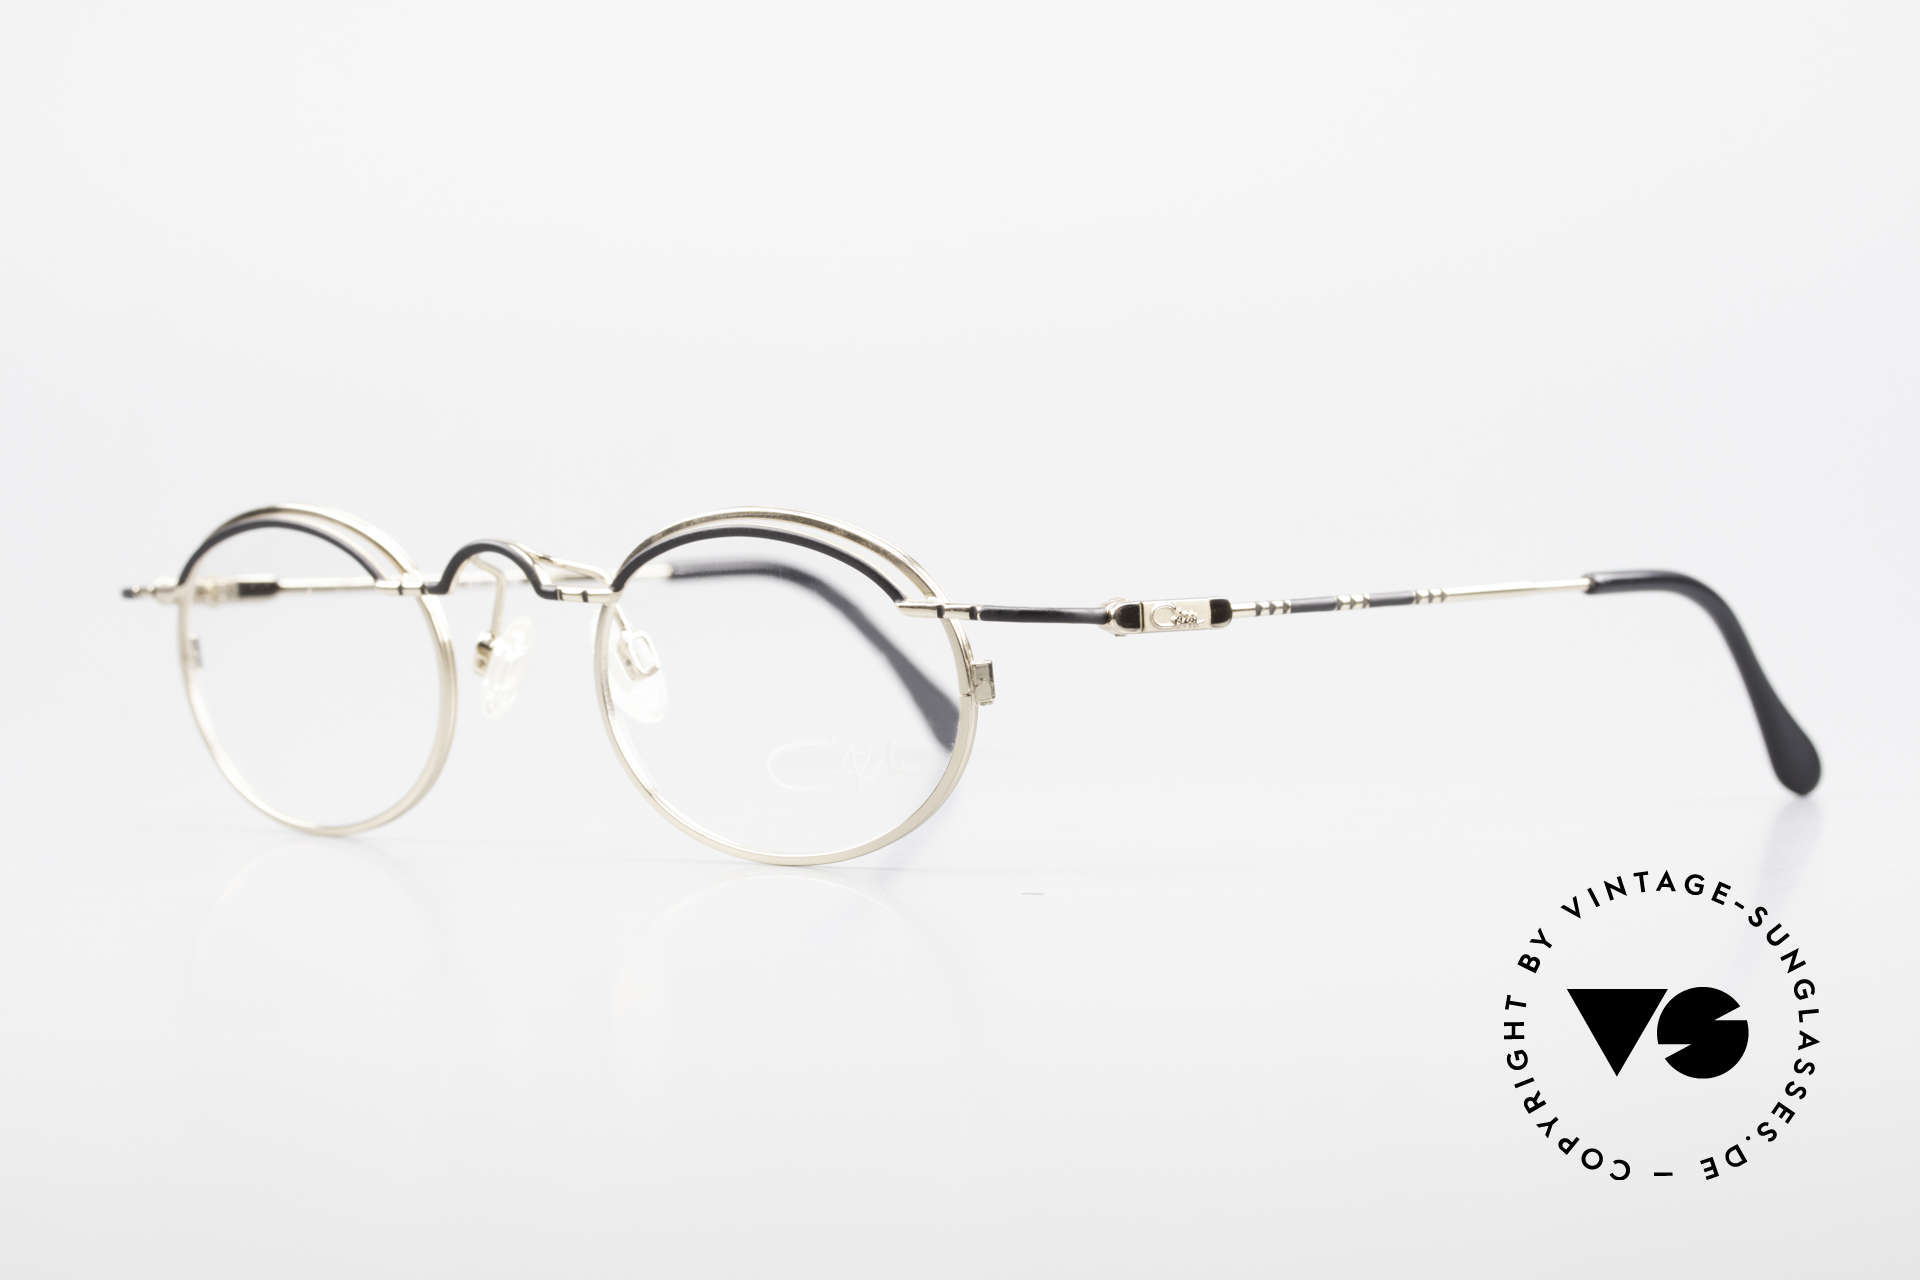 Cazal 775 Rare Oval 1990's Eyeglasses, high-grade frame finish GOLD-PLATED with black, Made for Men and Women